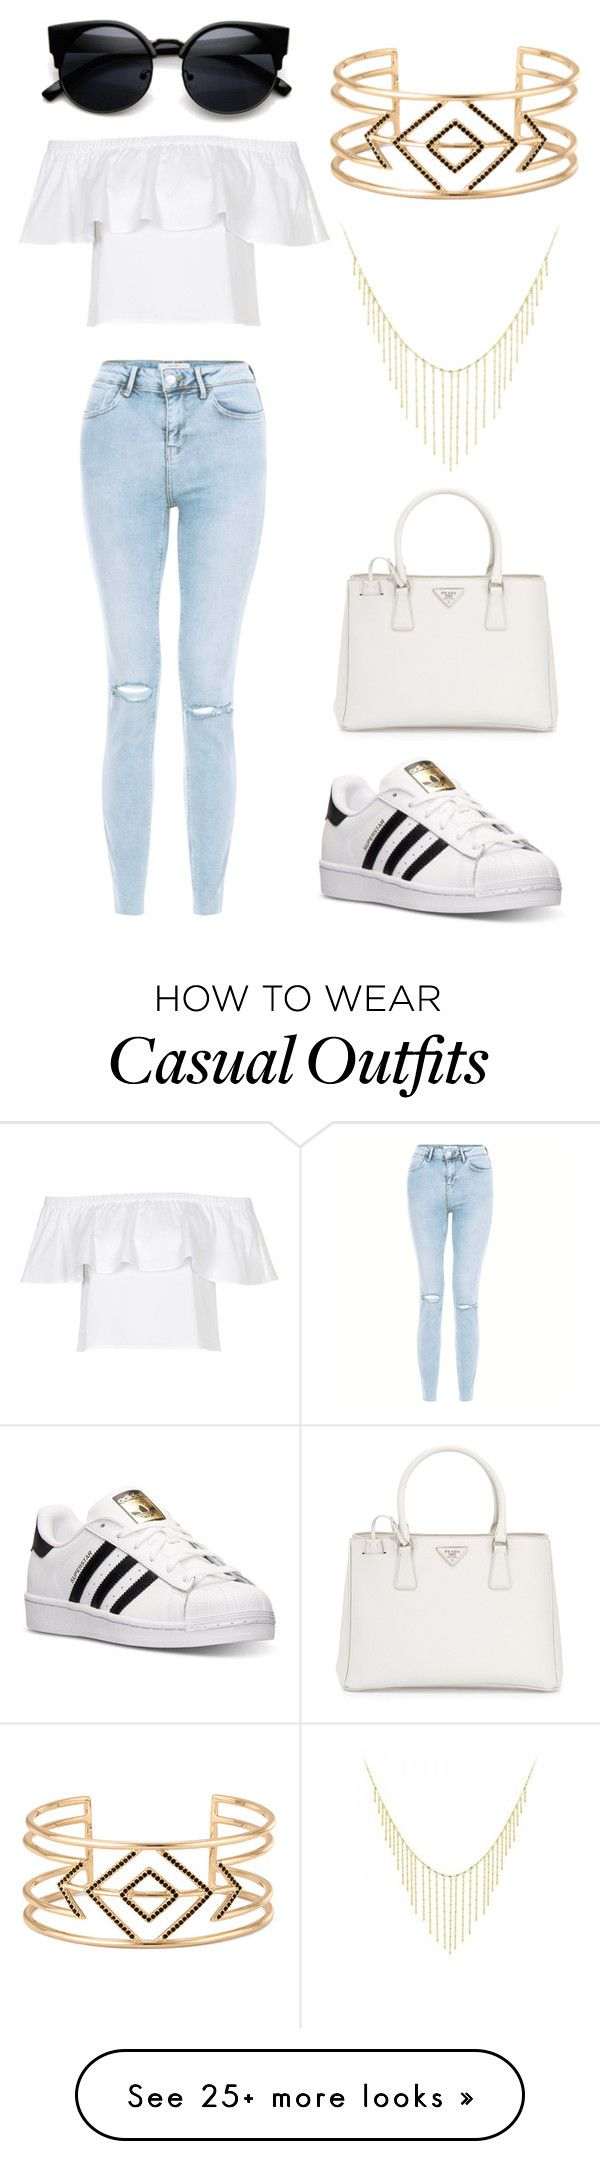 nike shoes Boho casual by alannahdingles22 on Polyvore featuring Stella Dot, adidas, Allurez, New Look, Topshop and Prada